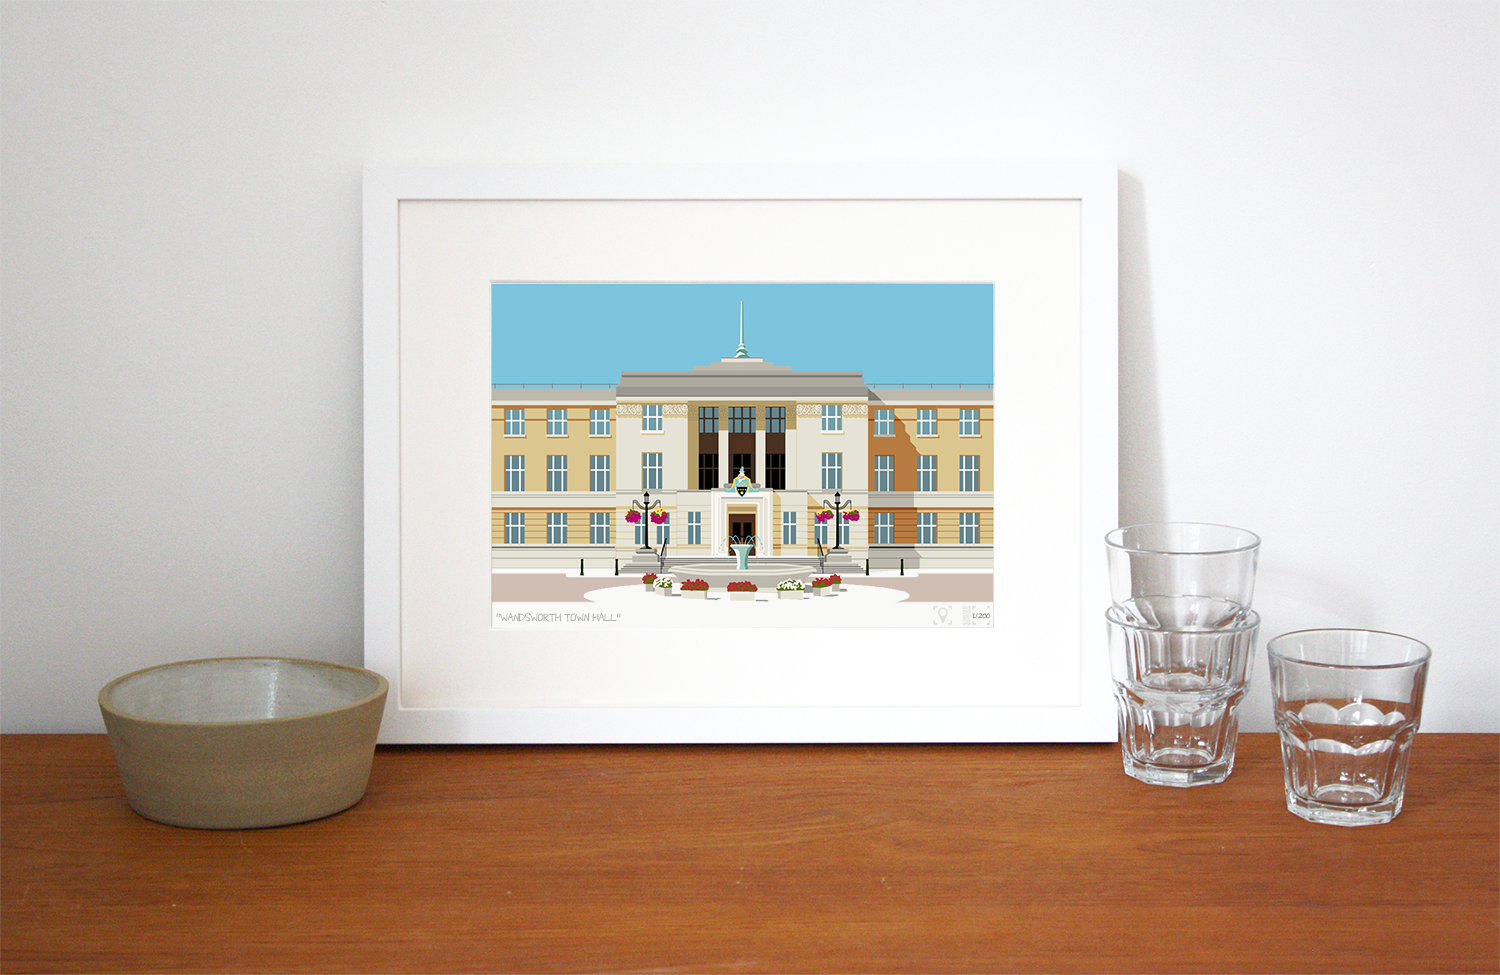 Place in Print Wandsworth Town Hall Landmark Art Print Lifestyle